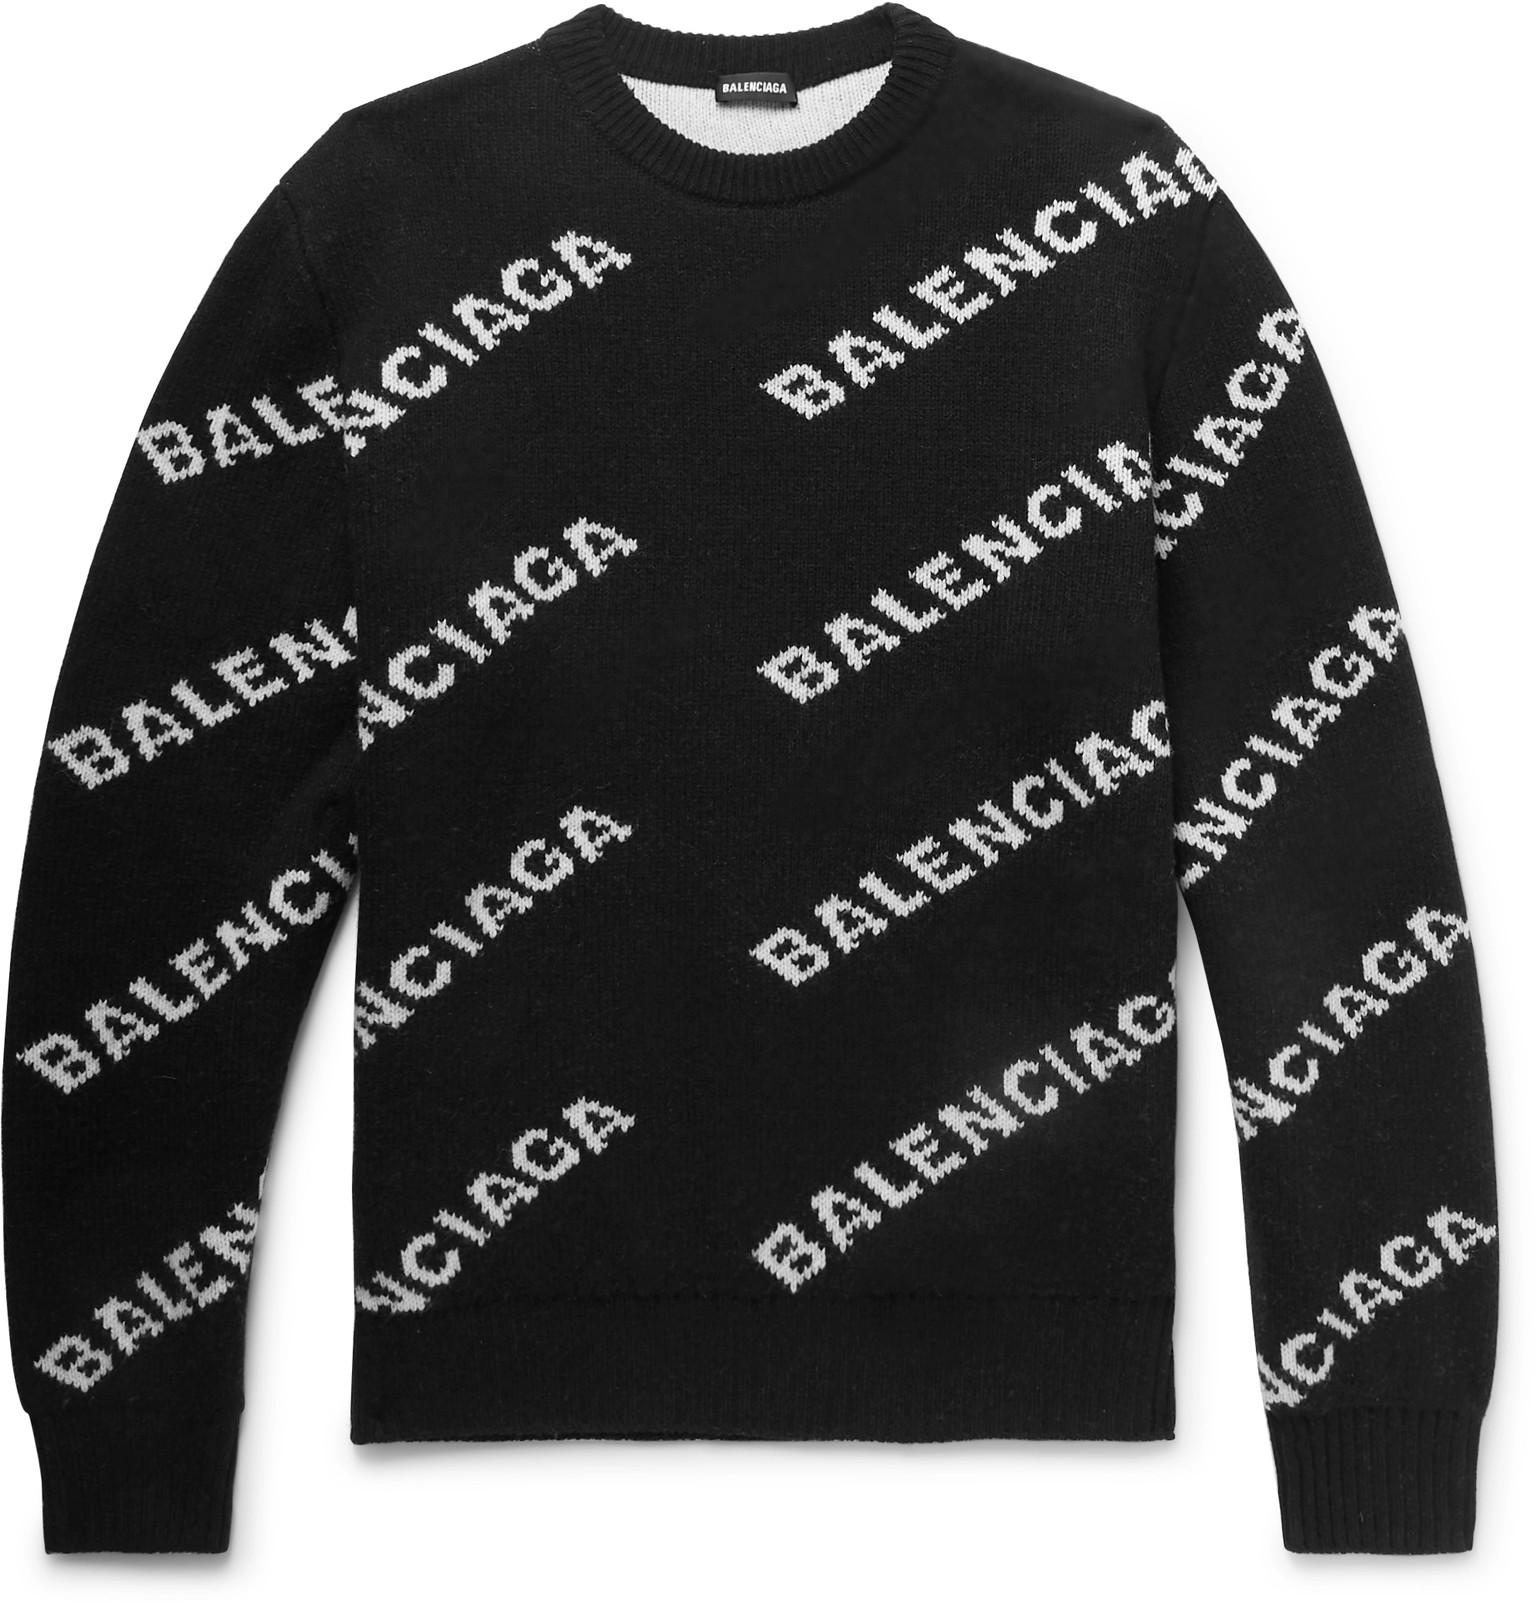 294eac9f5ac Balenciaga - Black Logo-intarsia Knitted Sweater for Men - Lyst. View  fullscreen